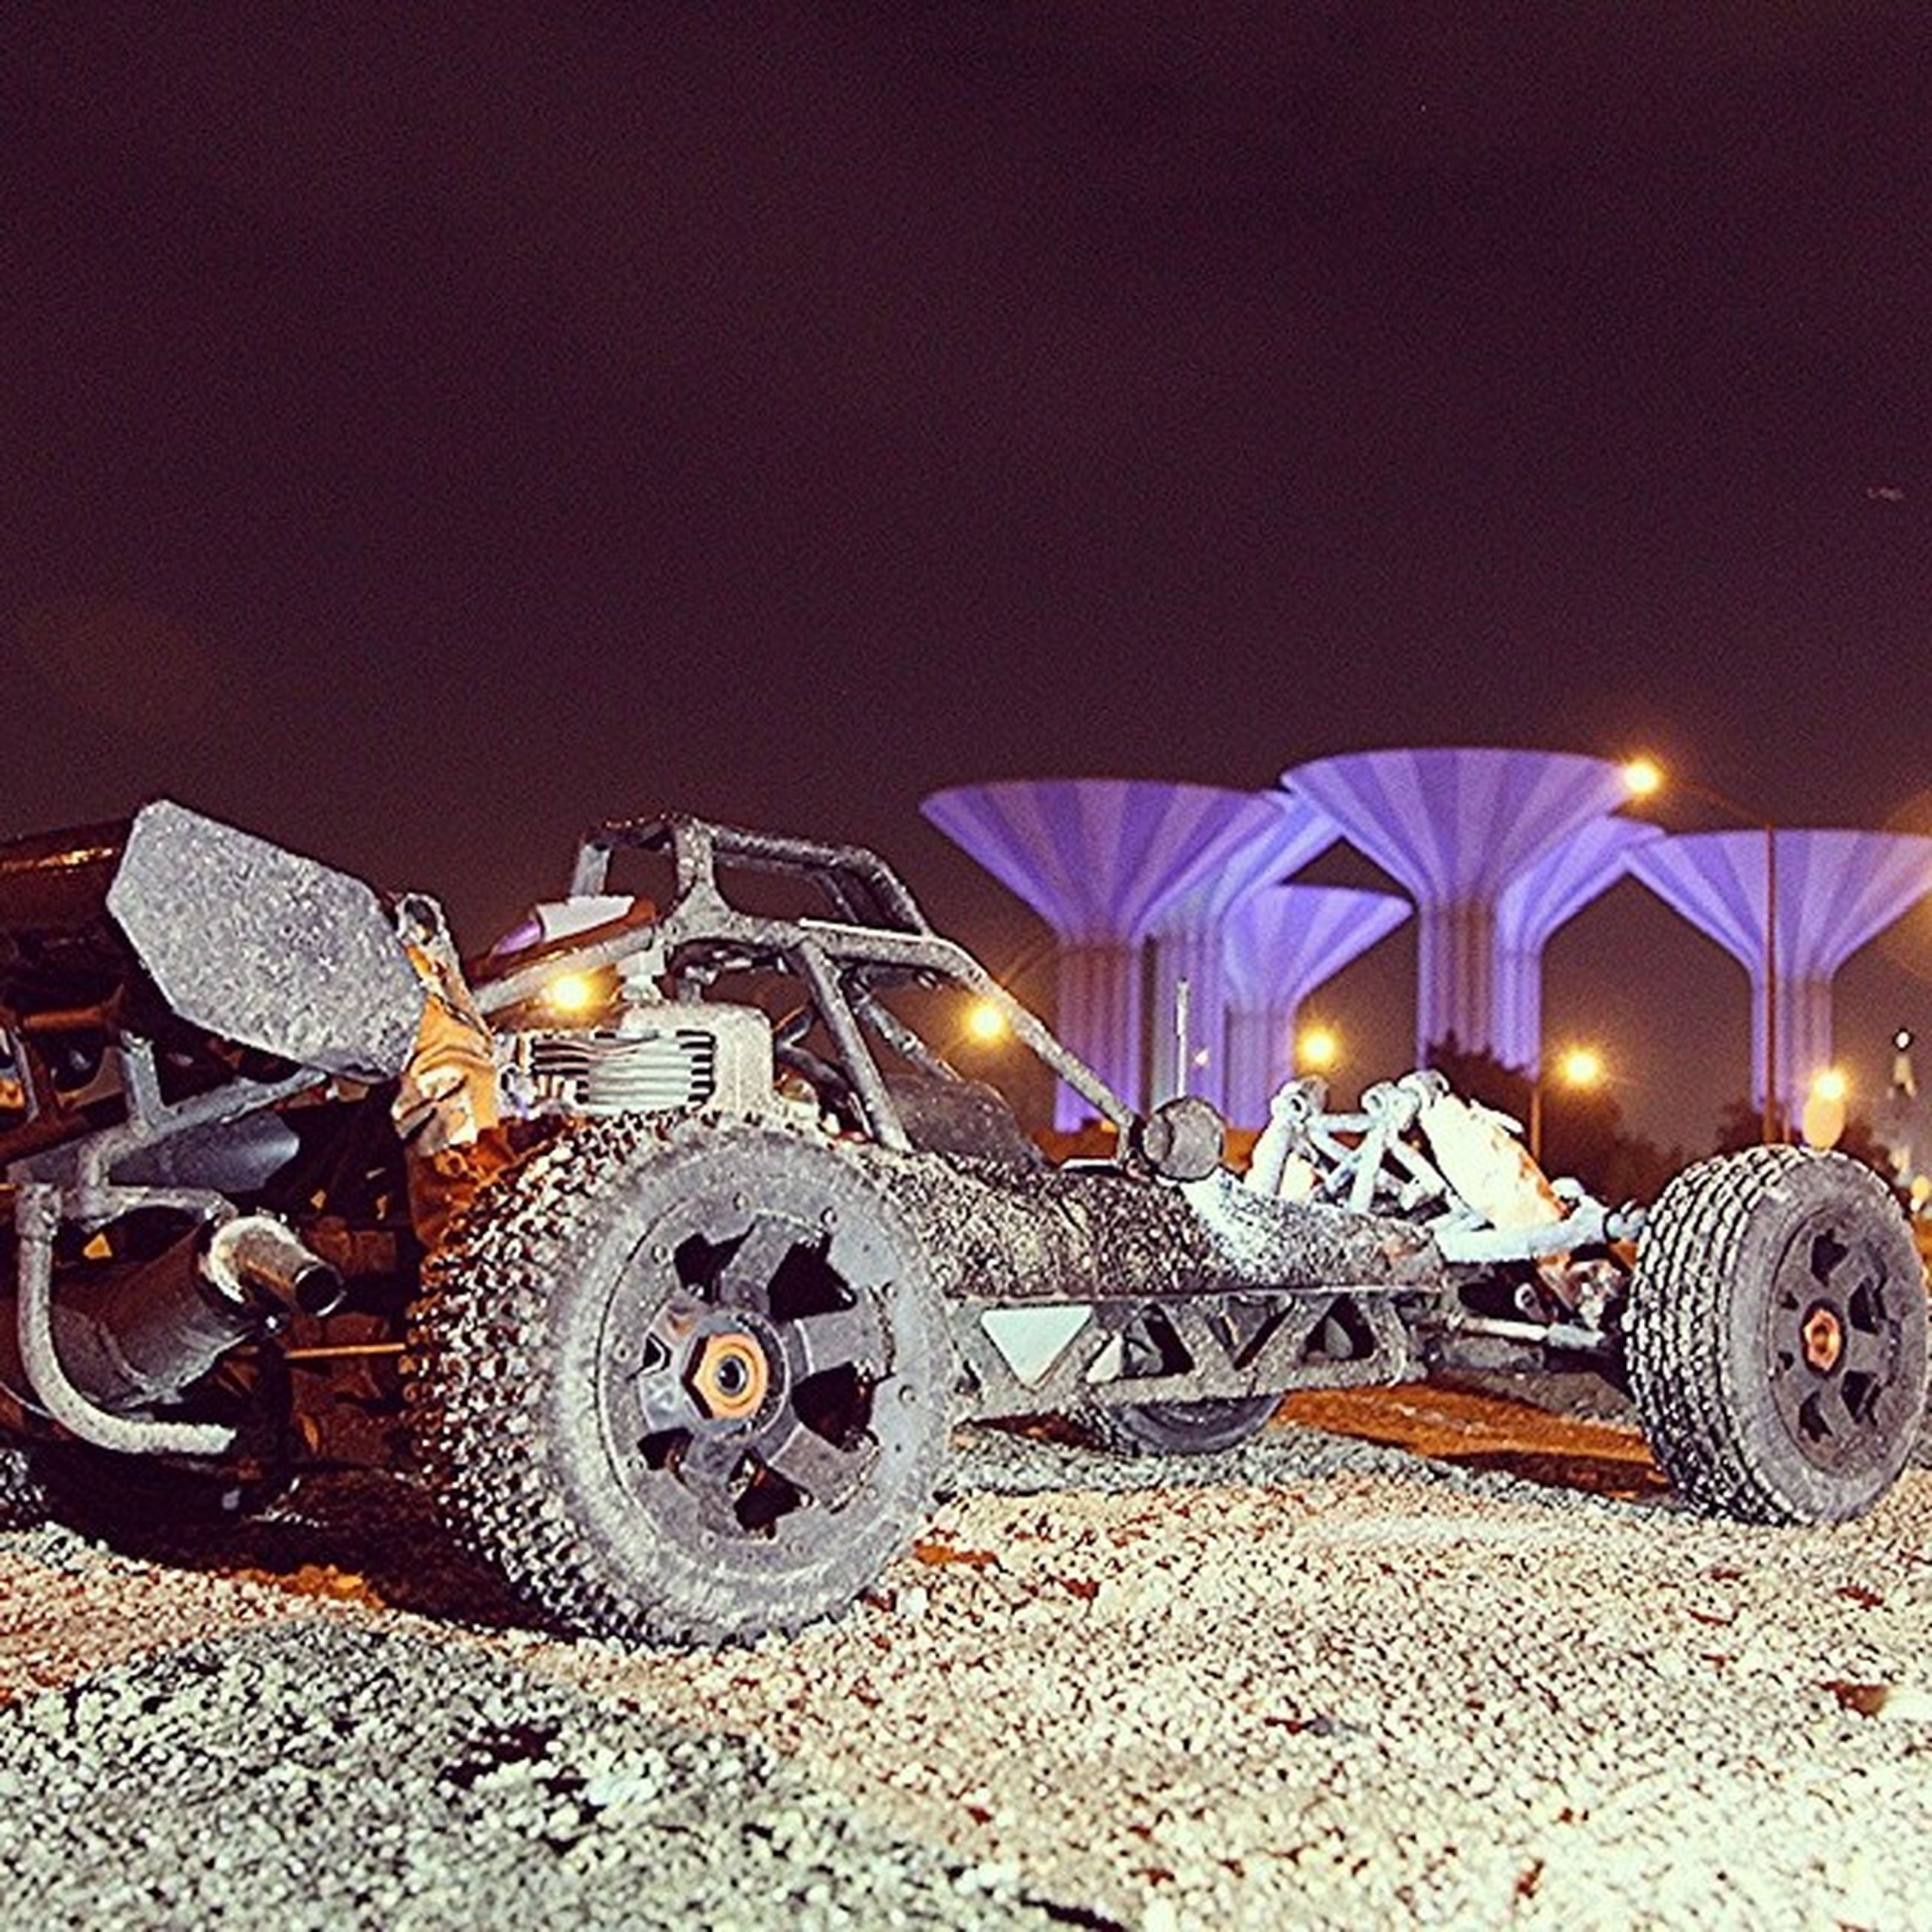 illuminated, transportation, night, land vehicle, mode of transport, stationary, parking, street, car, parked, wheel, outdoors, lighting equipment, no people, copy space, bicycle, built structure, sky, road, architecture